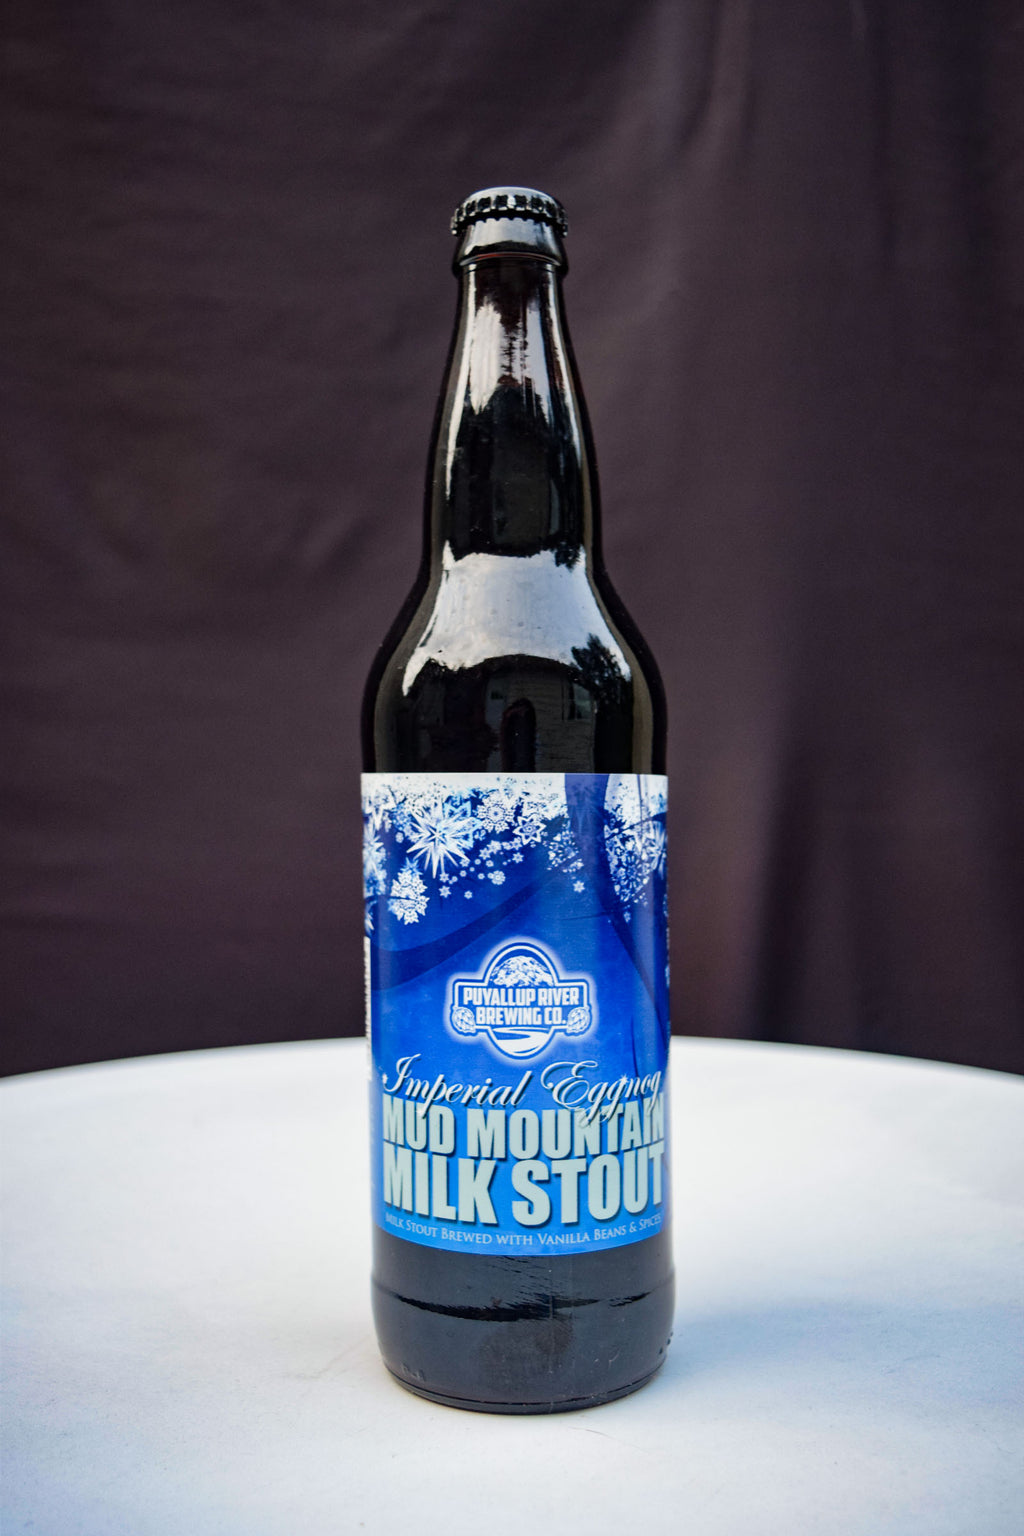 Buy Puyallup River Brewing Imperial Eggnog Mud Mountain Milk Stout Online